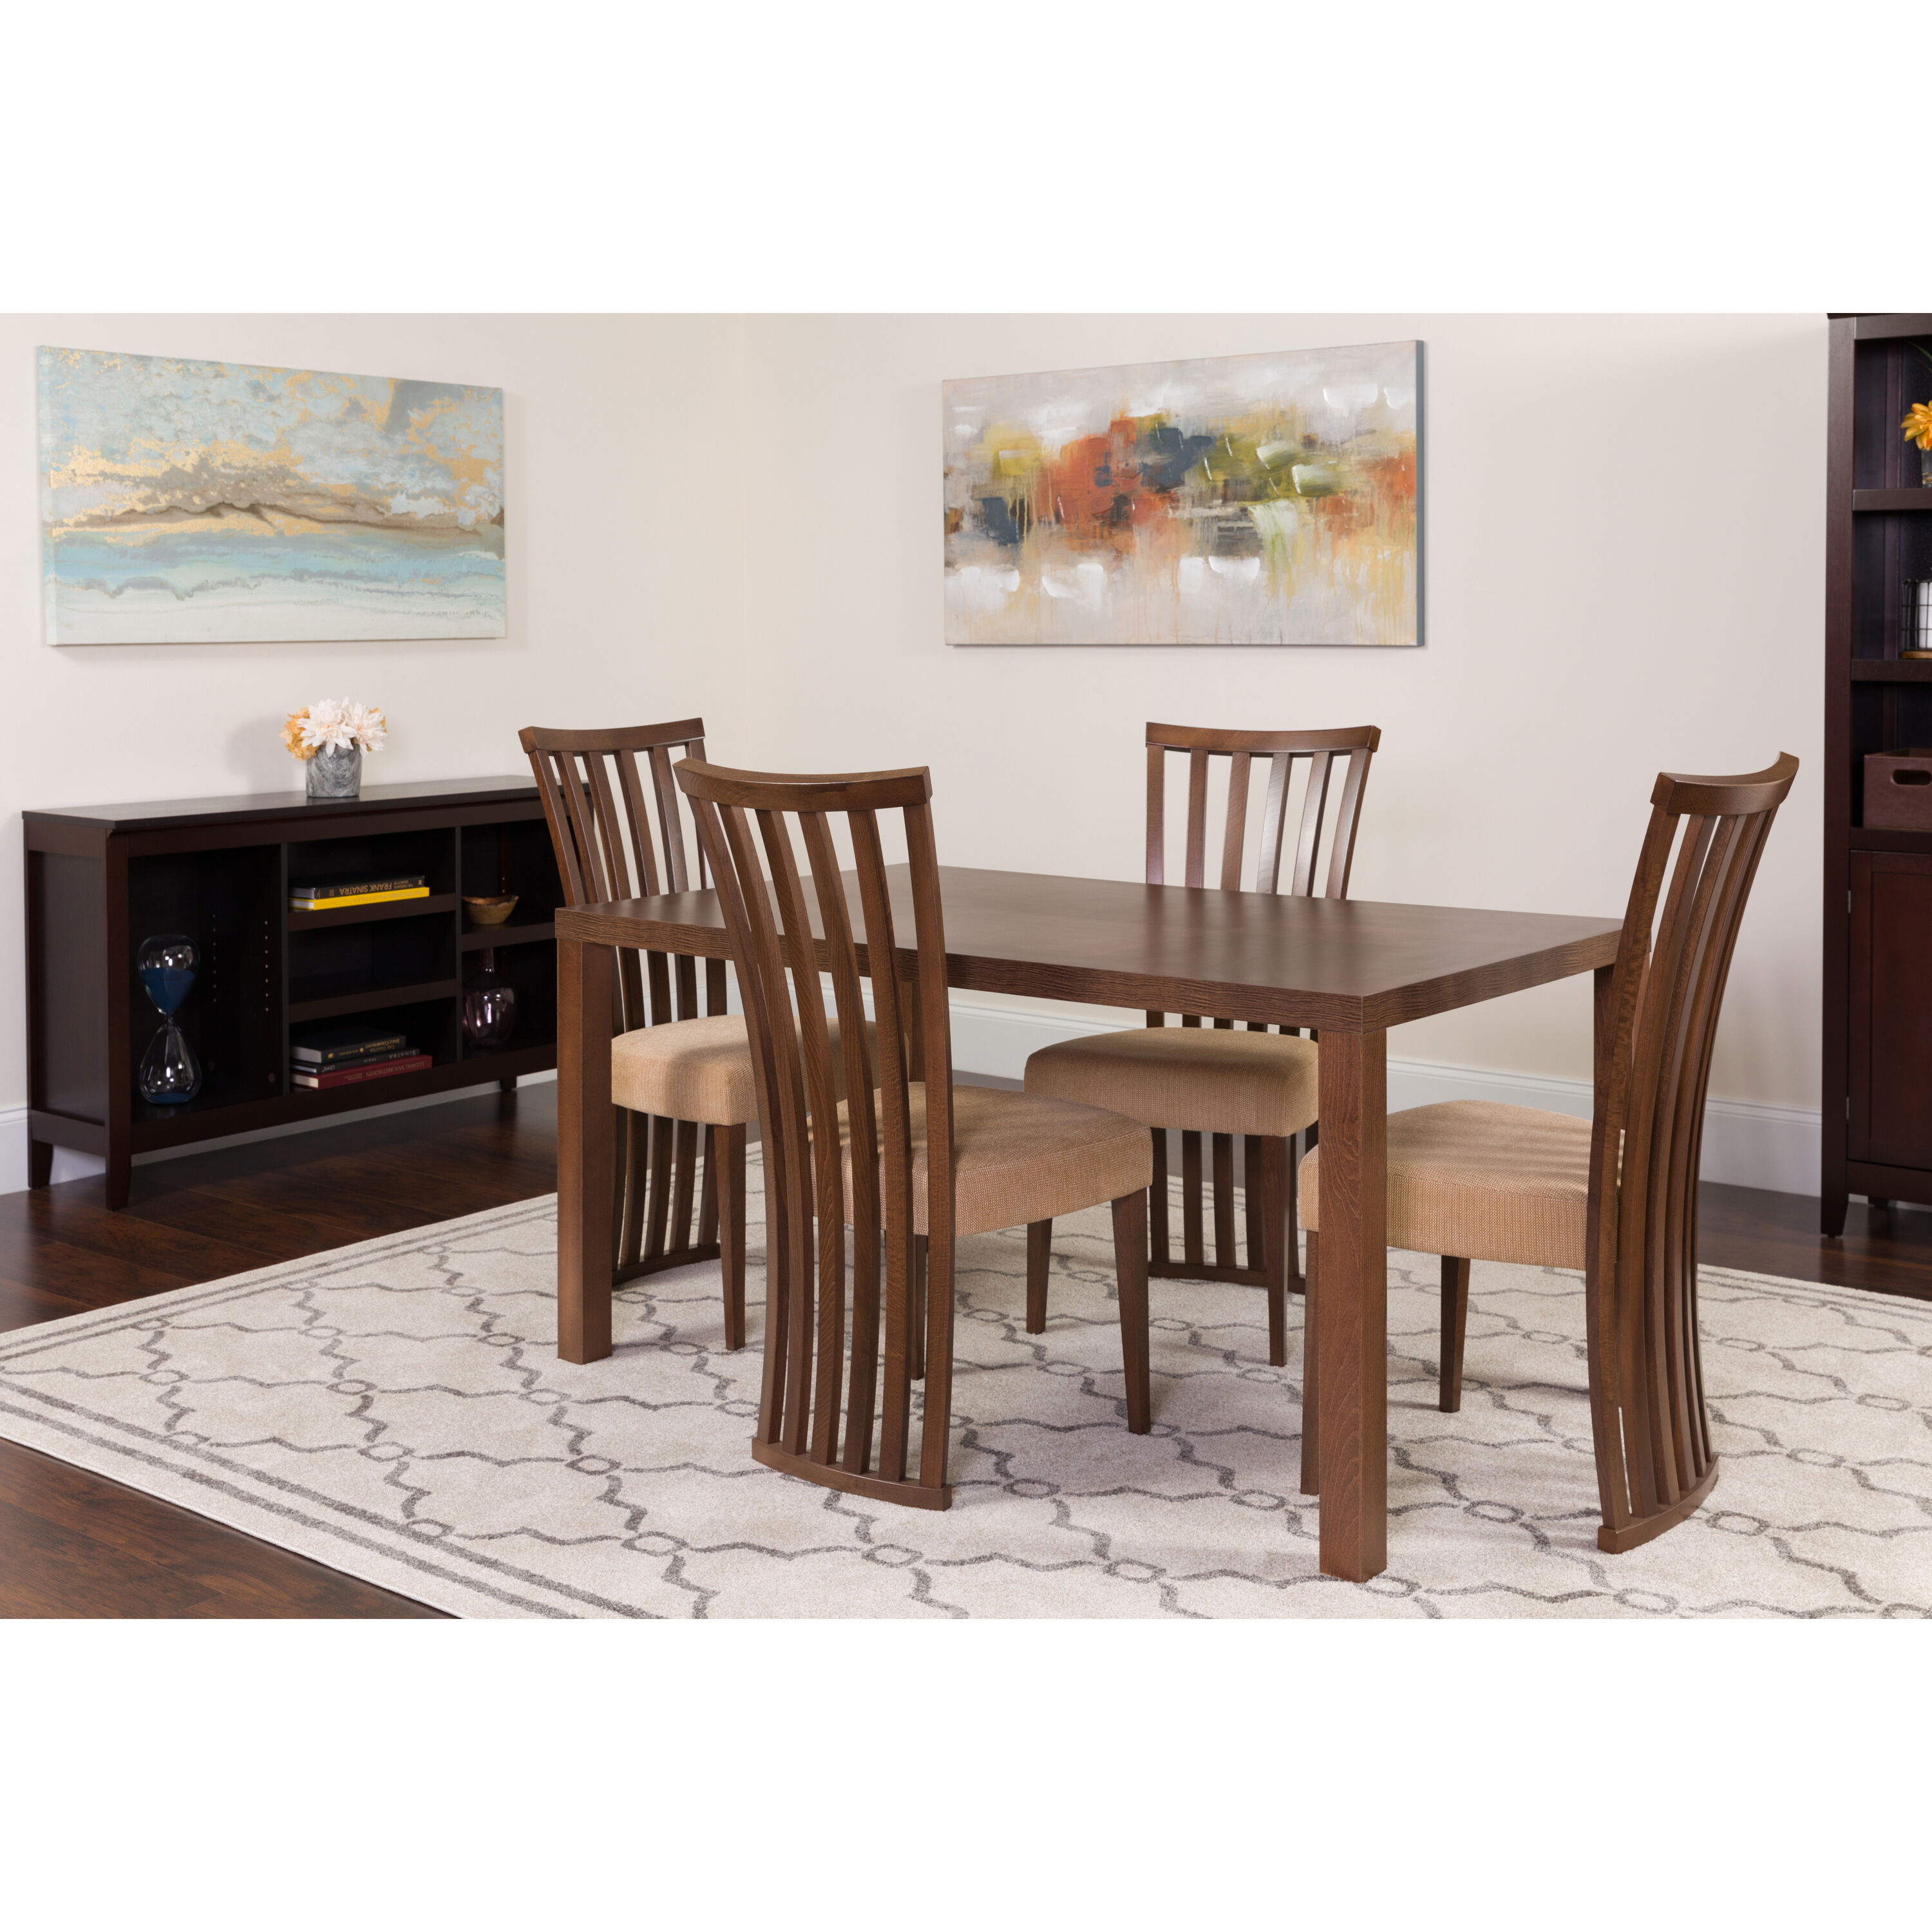 Addison 5 Piece Walnut Wood Dining Table Set With Dramatic Rail Back Design  Wood Dining Chairs